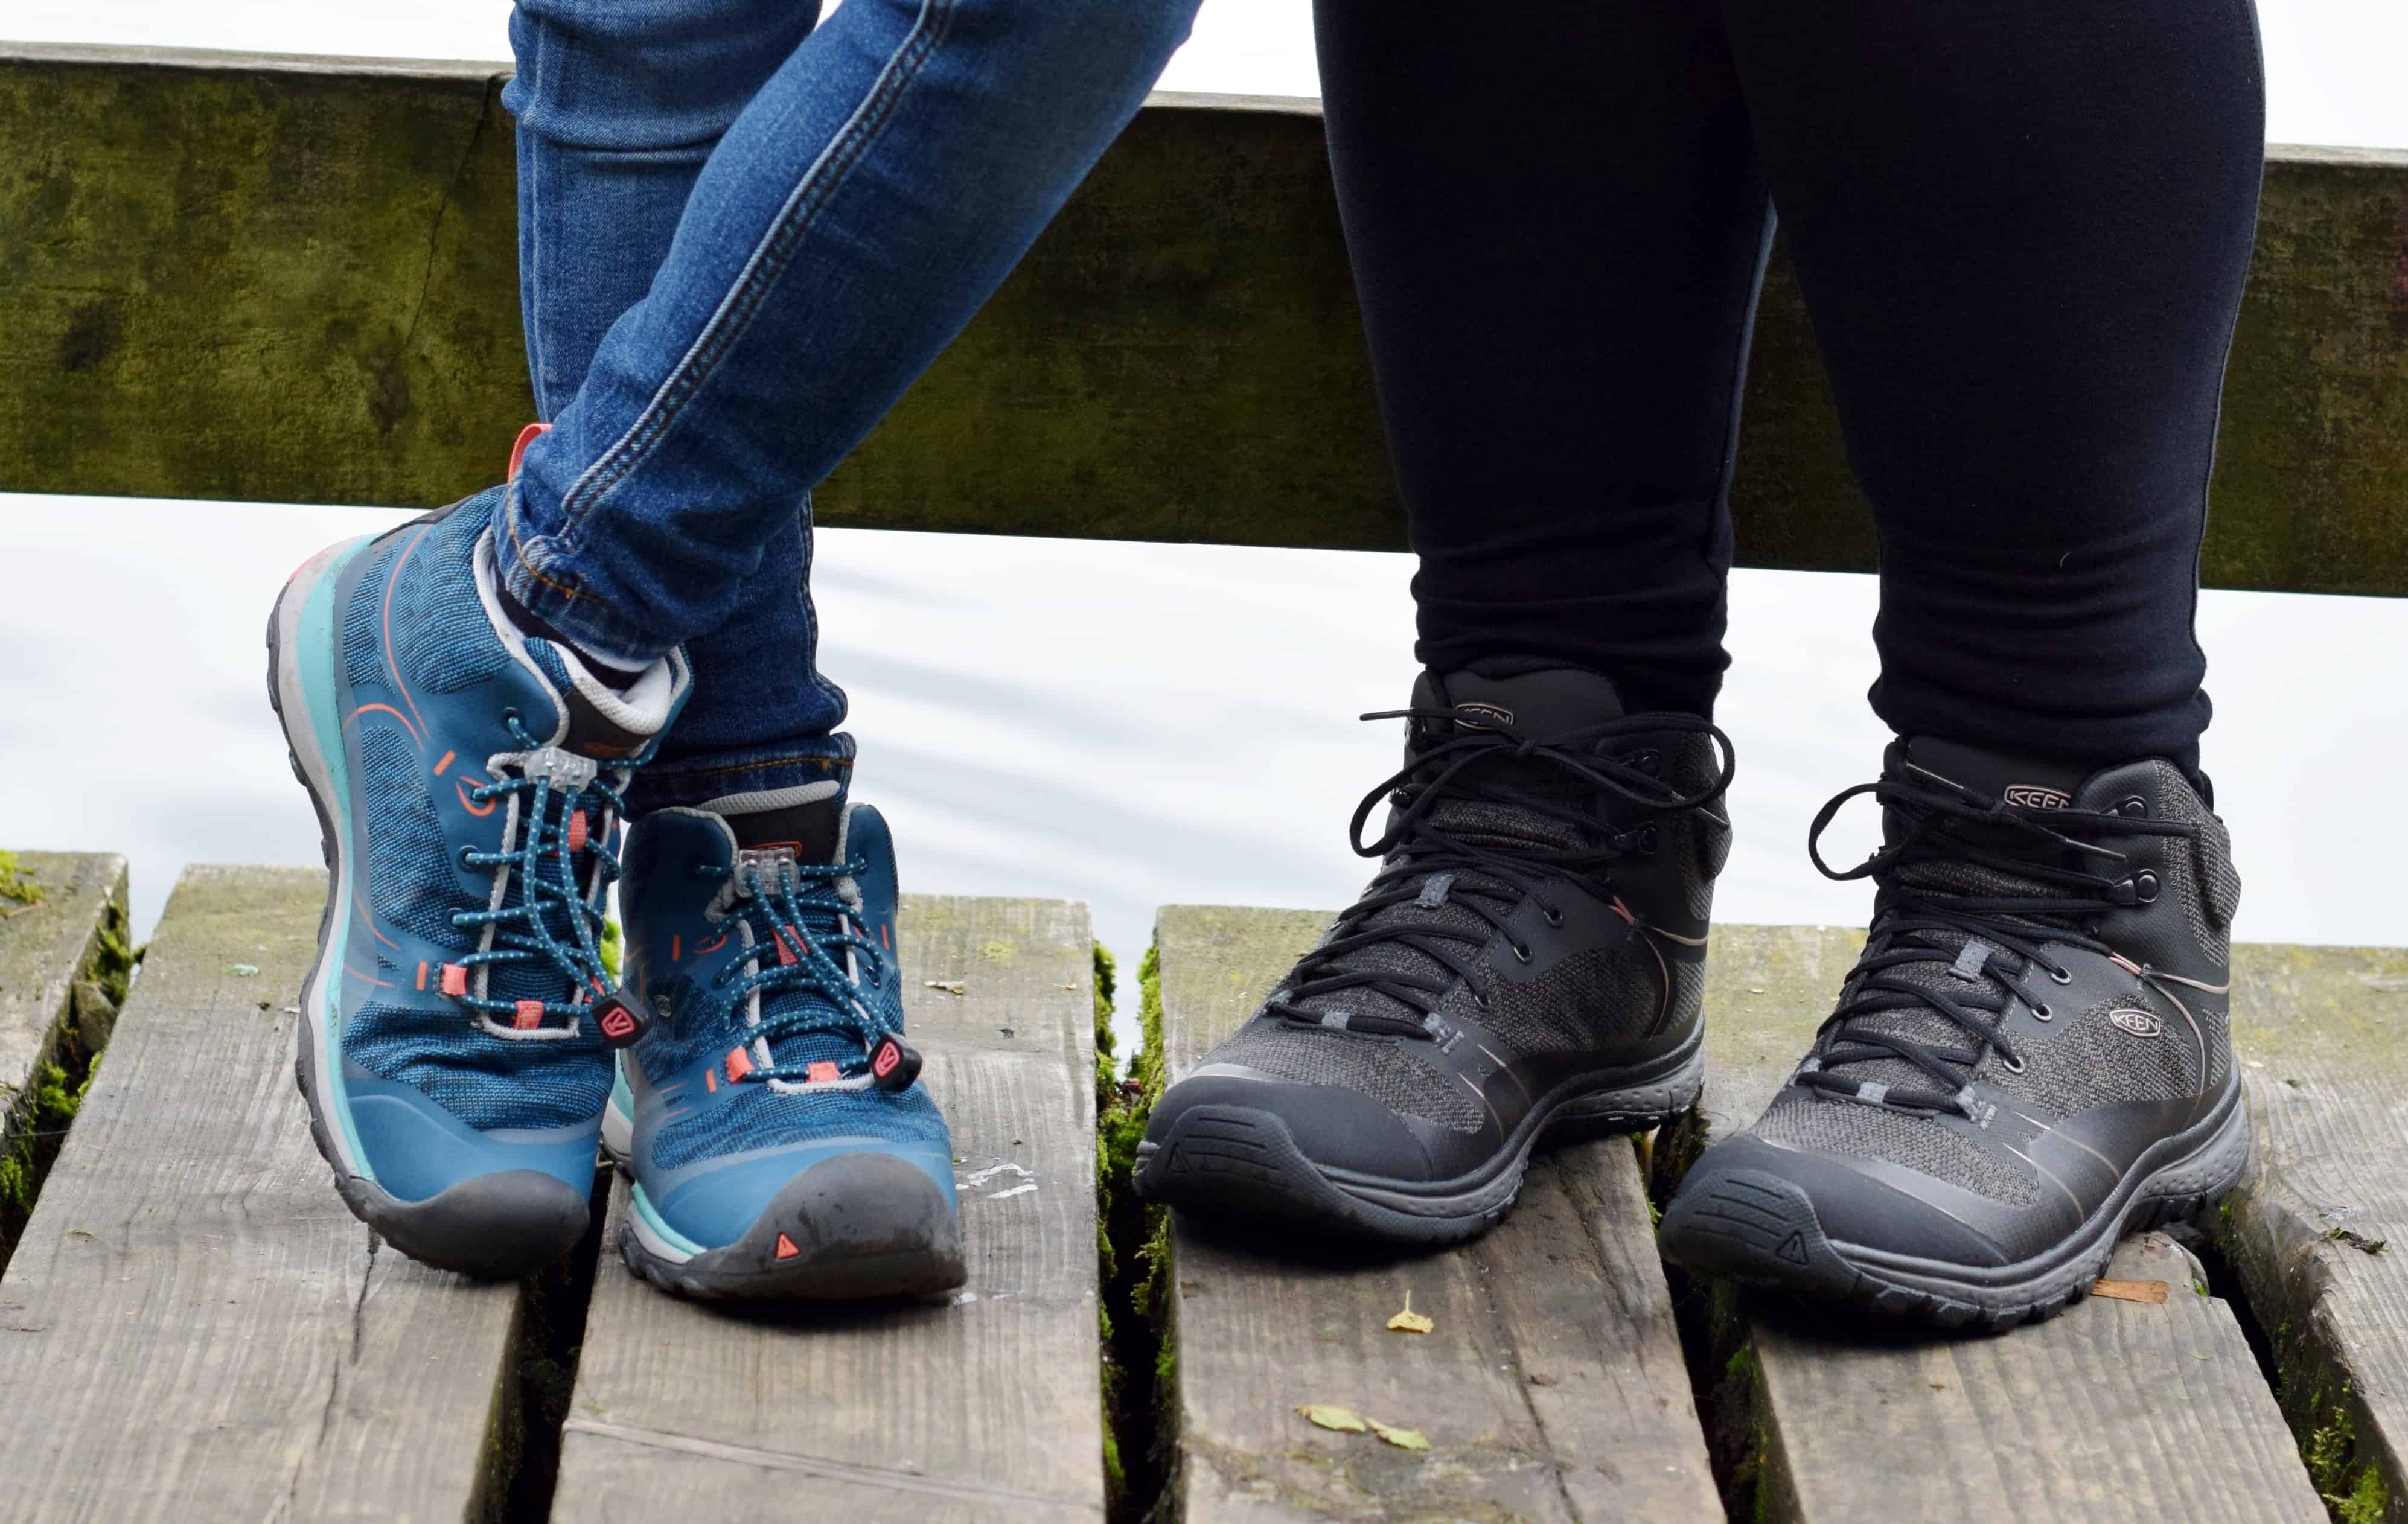 8b4969a101 Terradora Hiking Boots from Keen Footwear - Review - We're going on ...